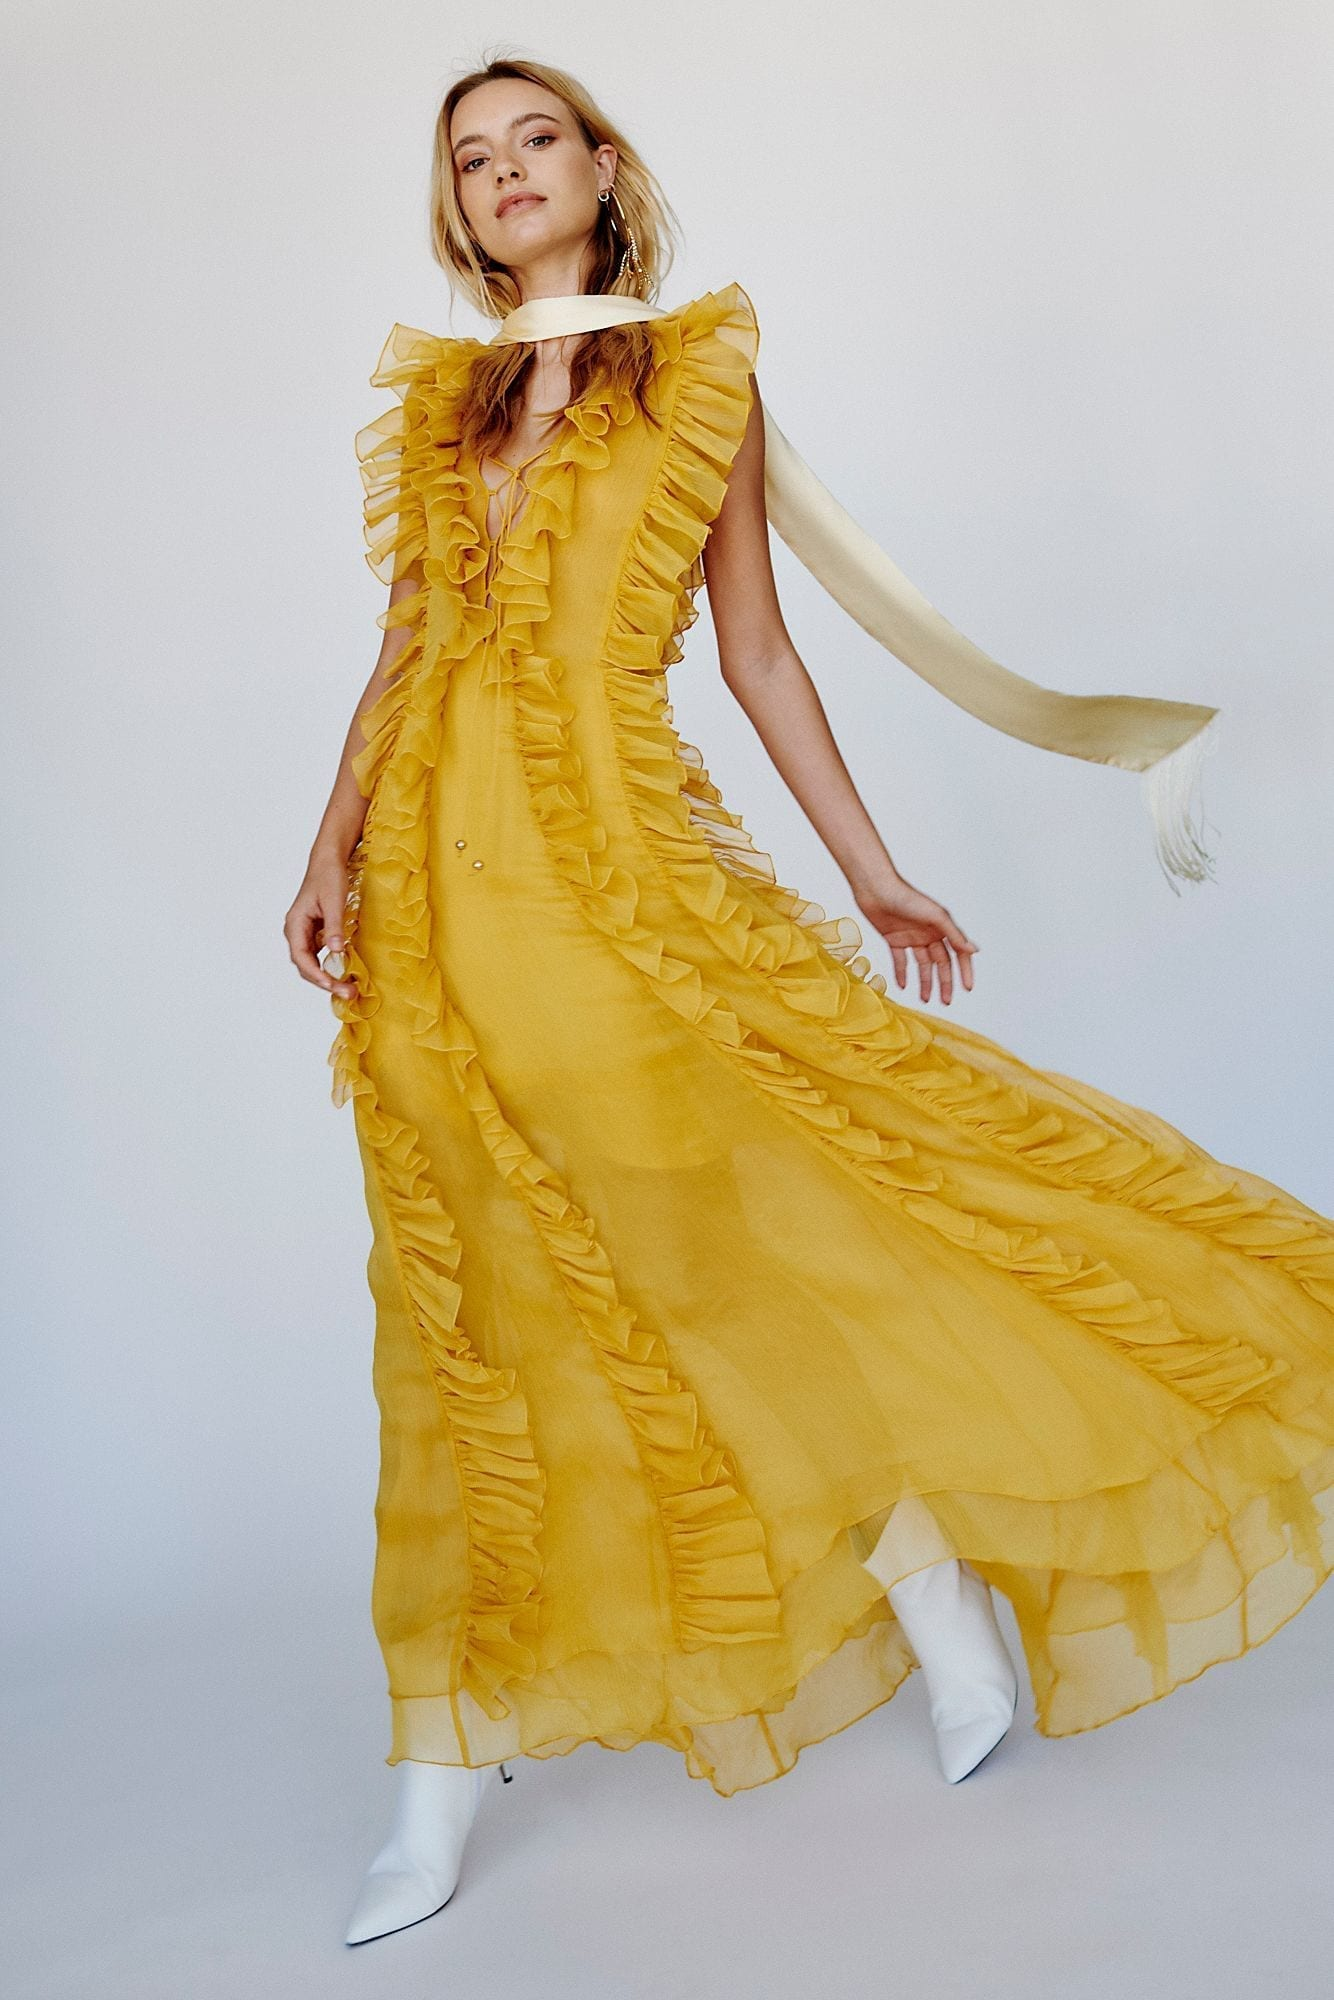 08b4b79e213032 SHONA JOY Ambra Layered Ruffle Maxi Yellow Dress - We Select Dresses